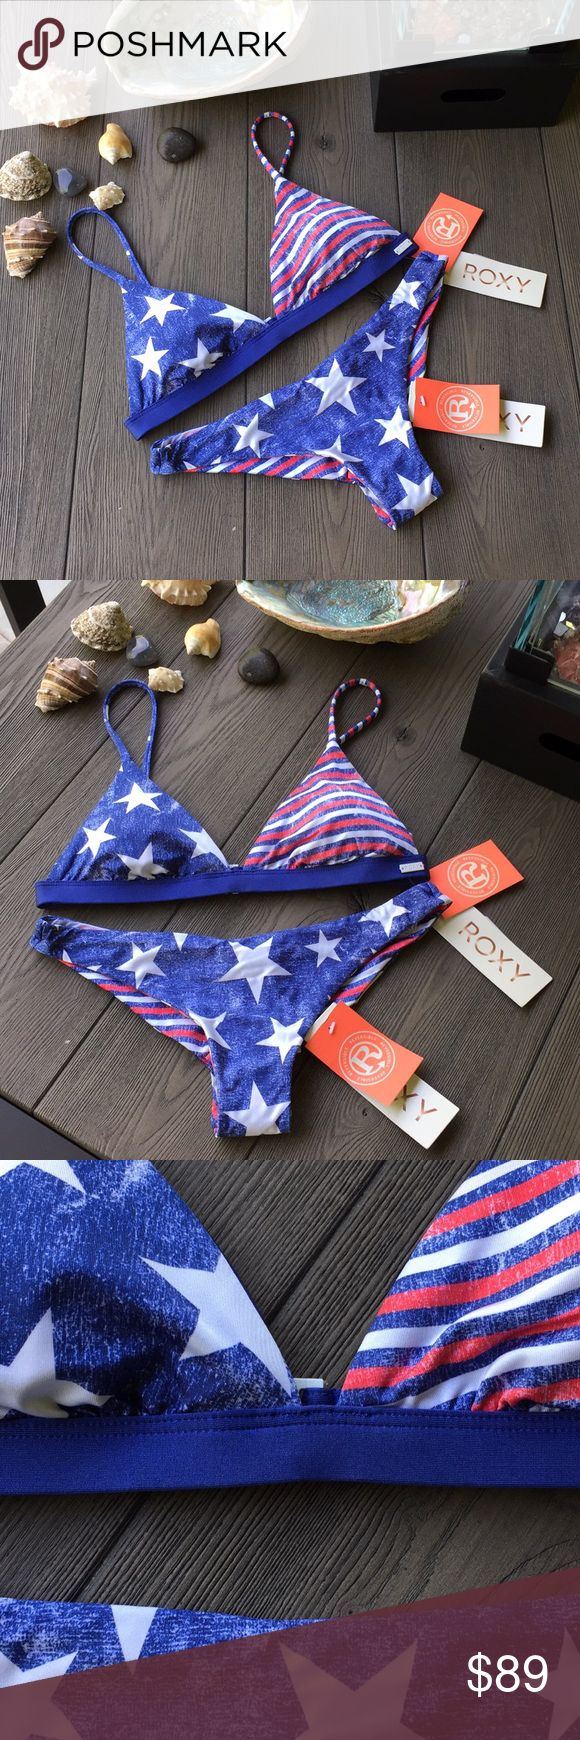 Roxy bikini reversible Brand new with tags both top and bottom size extra small. Also the top and bottom are reversible for many different combinations. Roxy Swim Bikinis